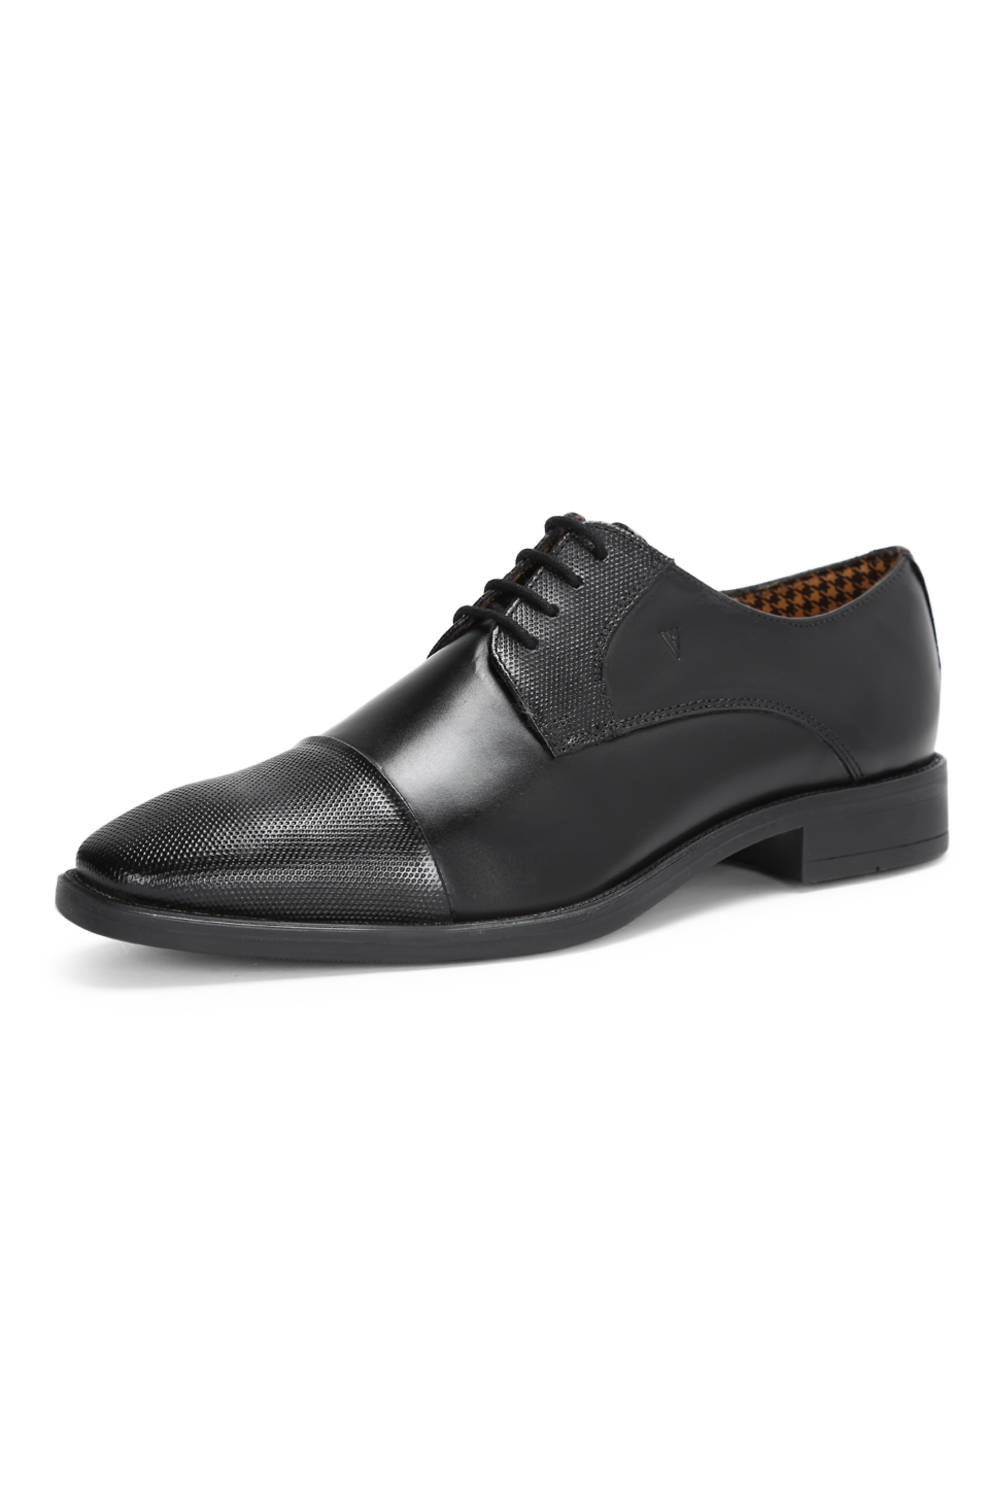 254de88dc6 Van Heusen Black Formal Shoes